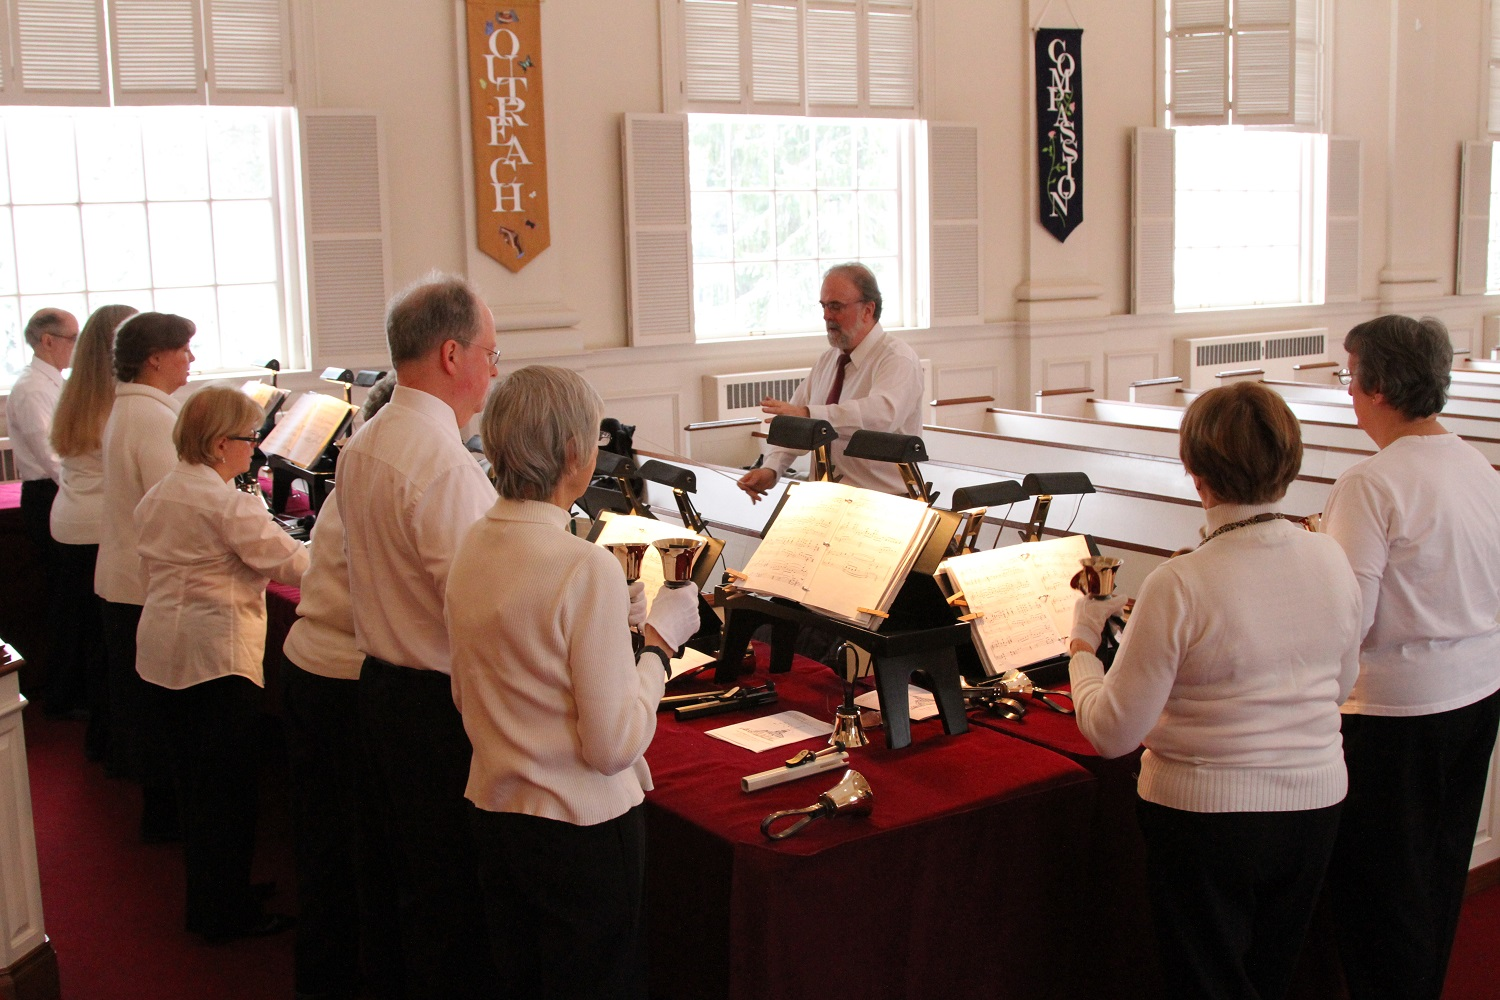 The Bell Choir prepares for worship.